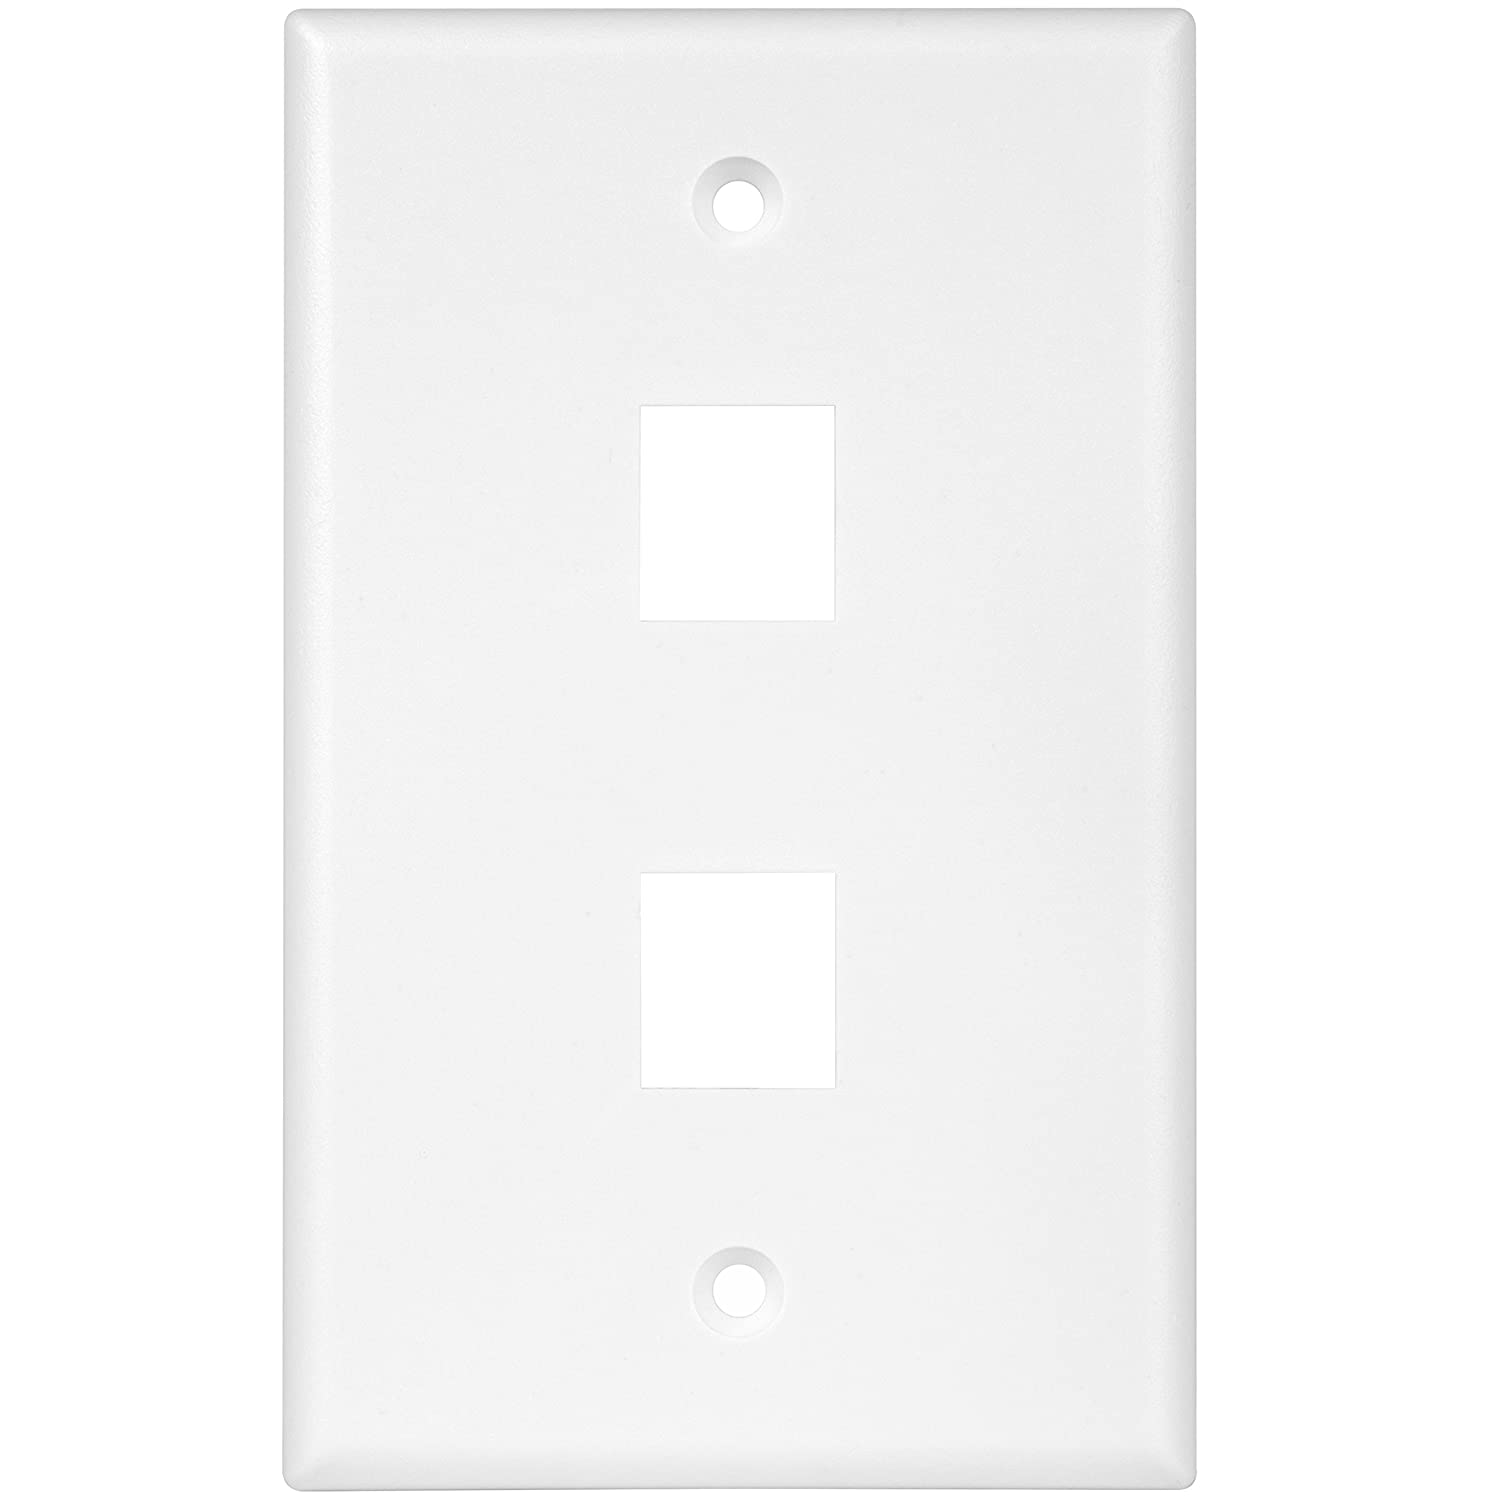 Enerlites 8873-W Keystone Jack Wall Plate by 1-Gang, 3-Port Multimedia Module Insert Cover for Voice Data Audio Video Connections, White Top Greener Inc